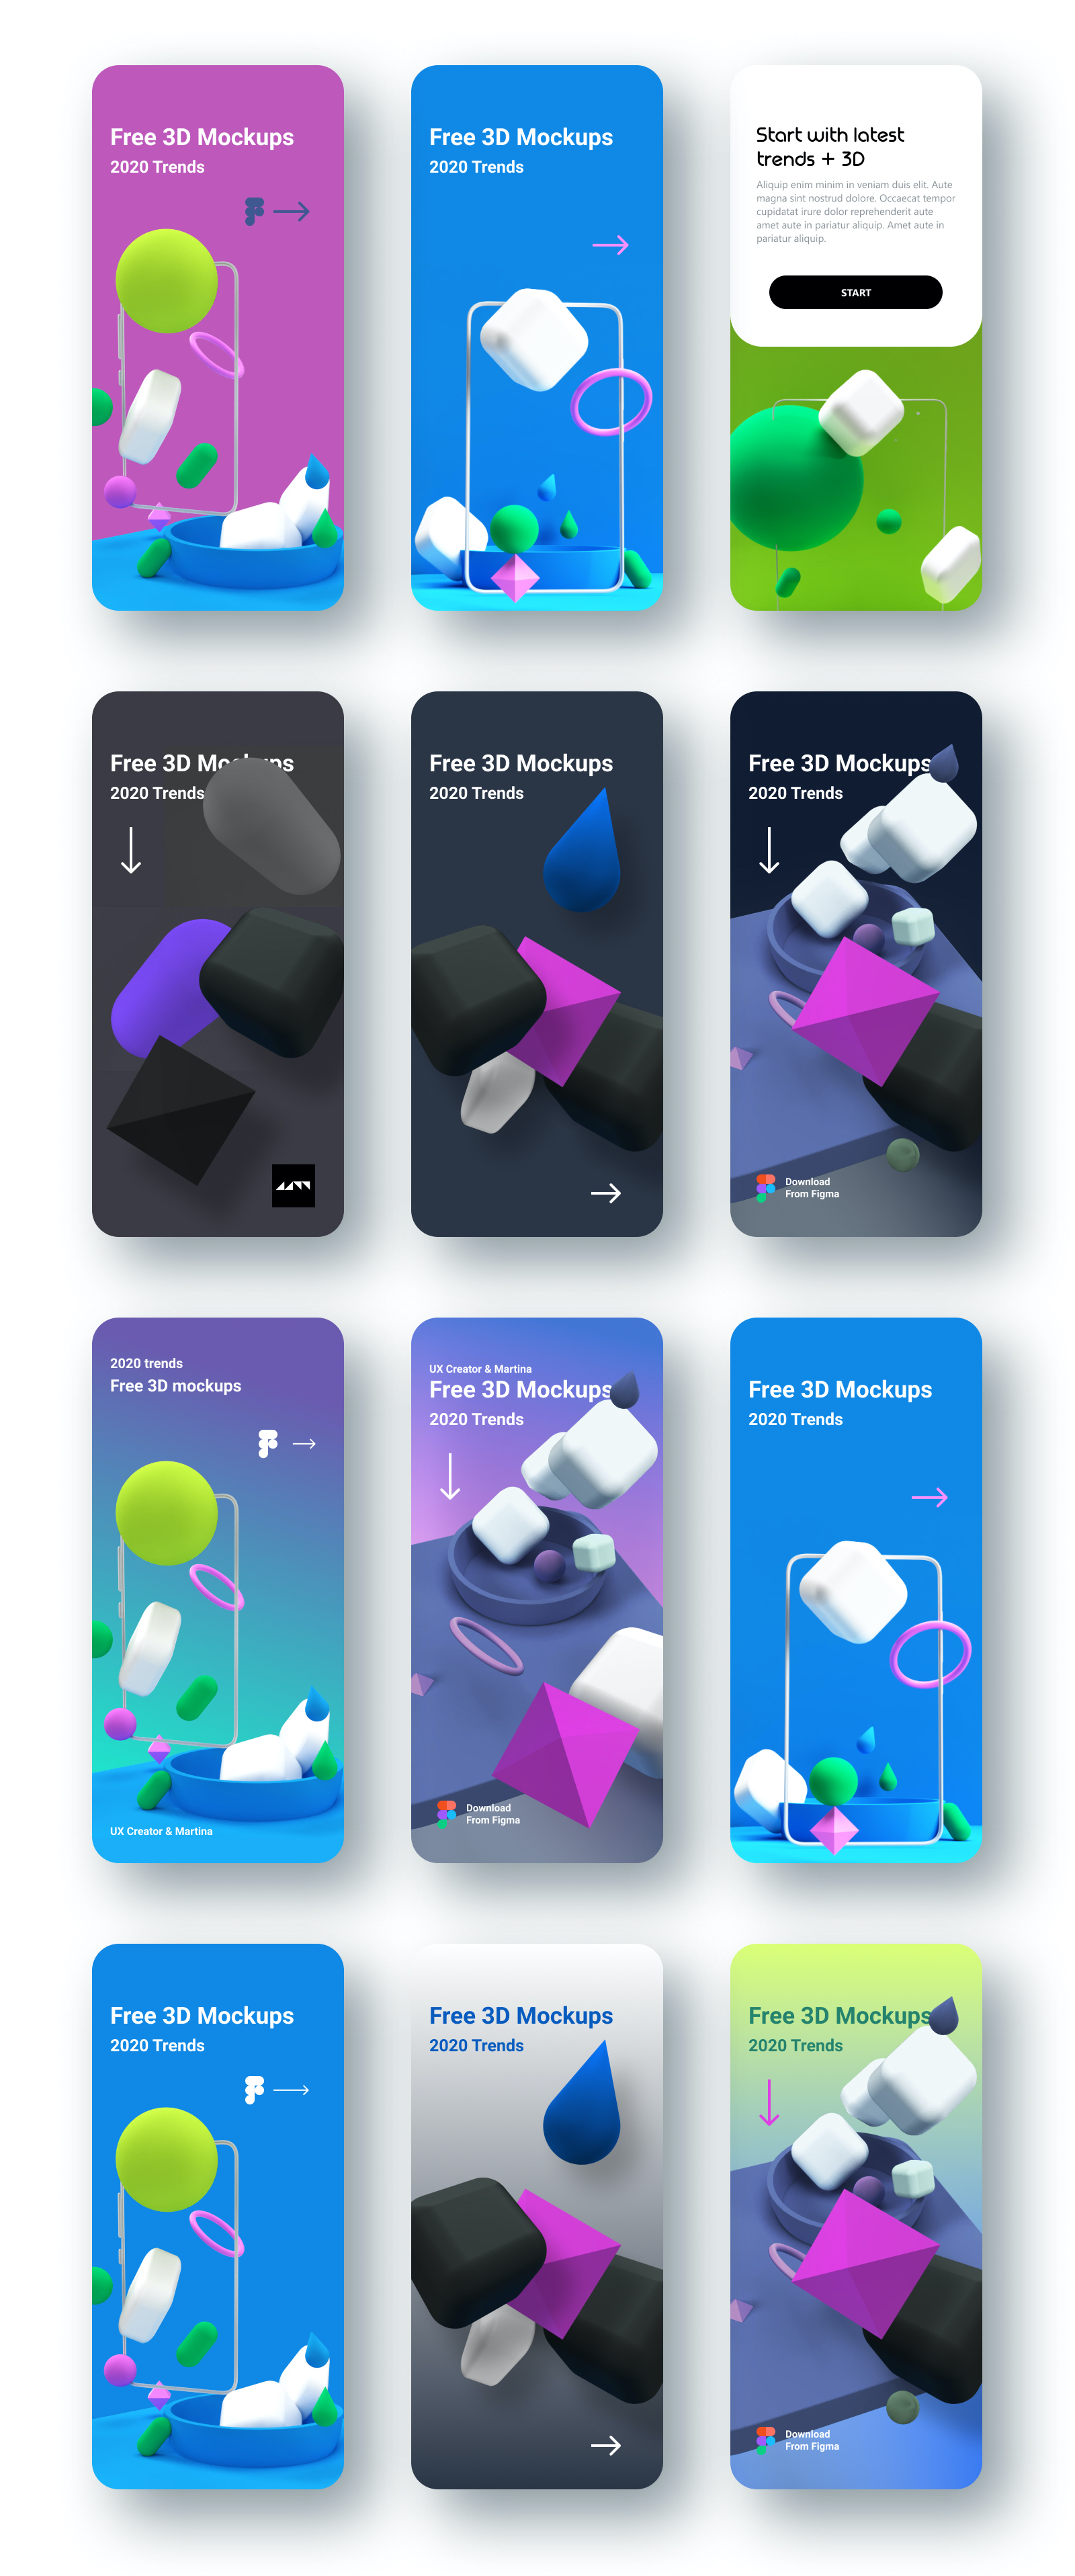 3D Models App Mockups for Figma - 3D models are currently a popular trend in web design. 3D illustrations are very often used in the design of landing pages for apps or websites. Consists of 26 shapes, 22 compositions, and 12 mockups for demonstration purposes.